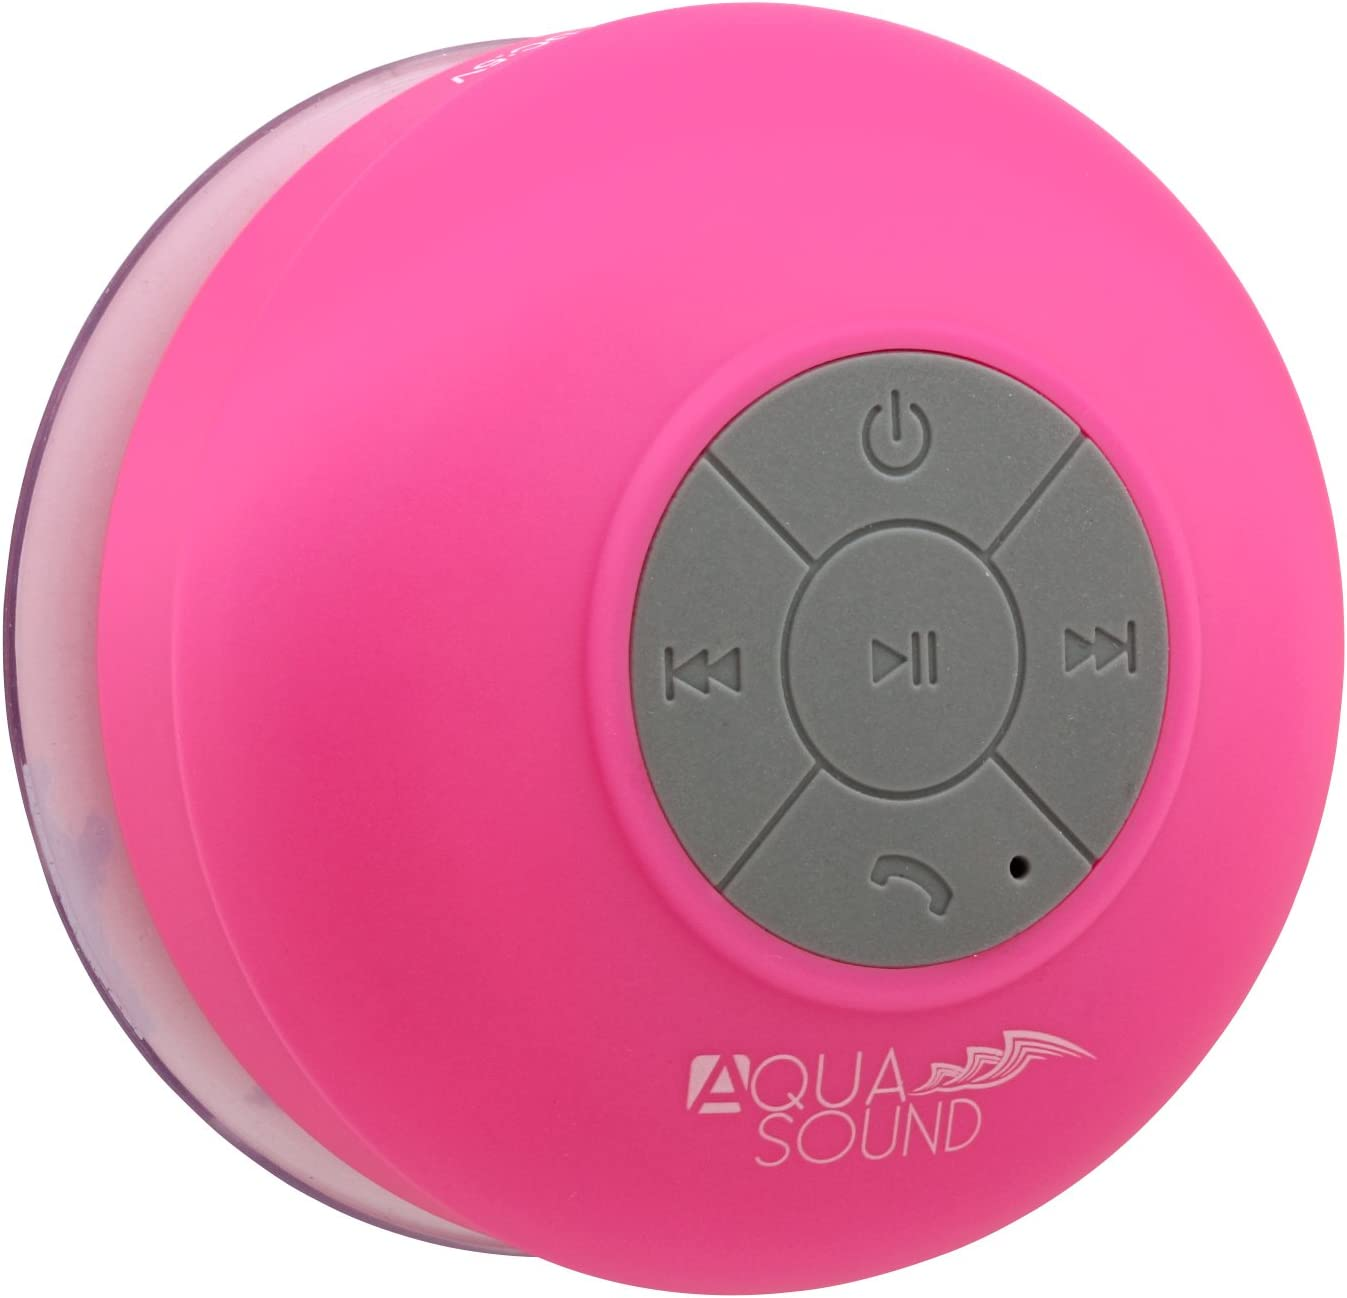 Aduro AquaSound WSP10 Shower Speaker, Portable Waterproof Wireless  Bluetooth Speaker (Pink)